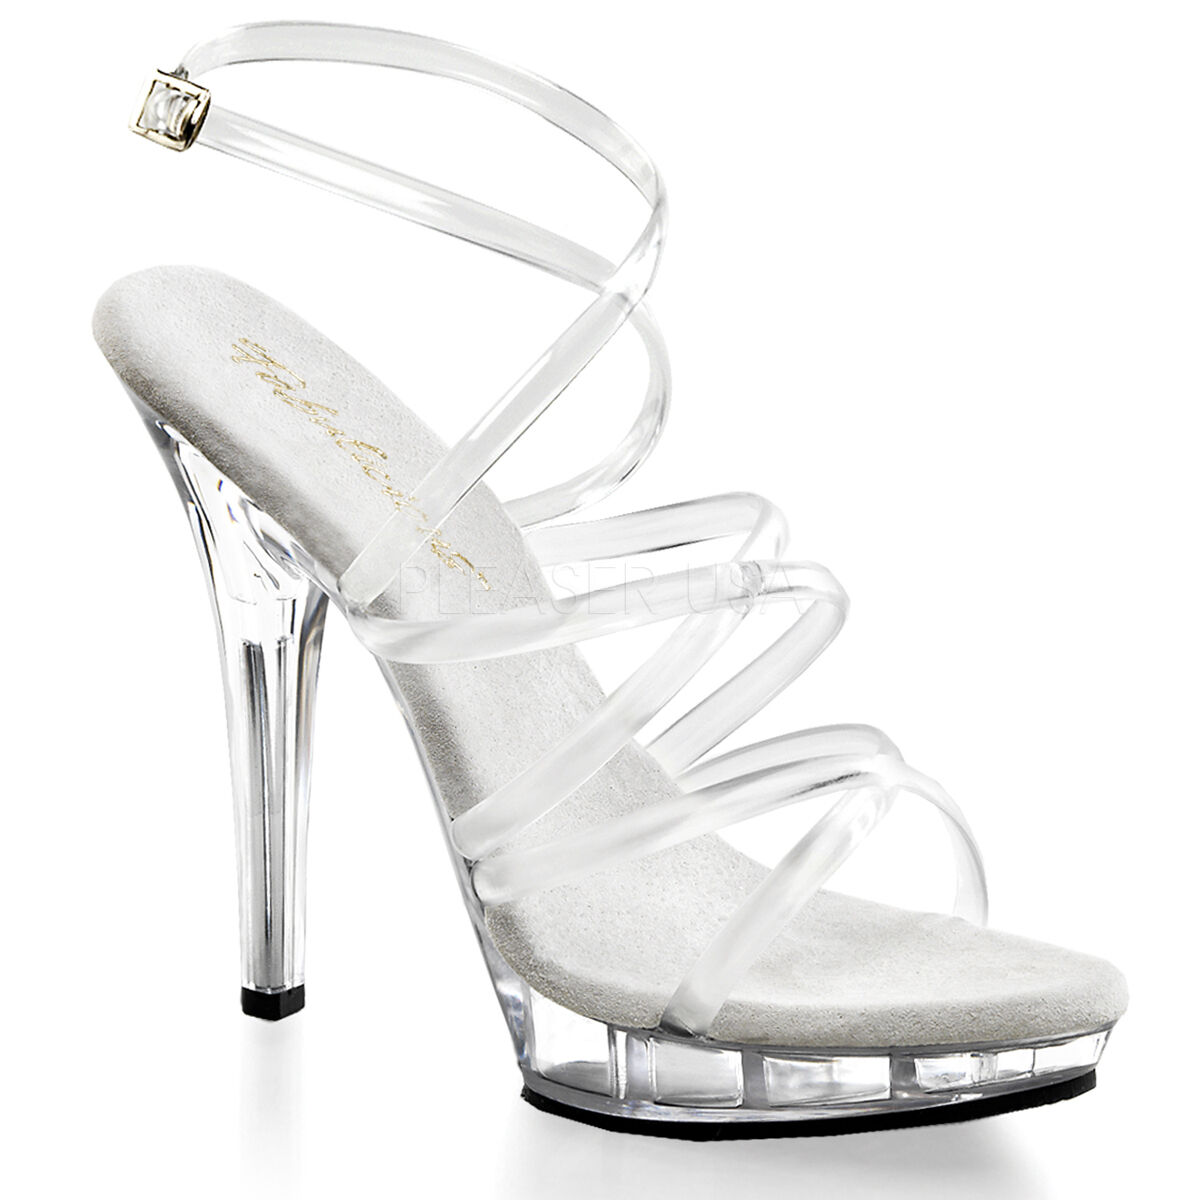 PLEASER FABULICIOUS LIP-106 CLEAR STRAPPY COMPETITION STILETTO SANDALS SHOES